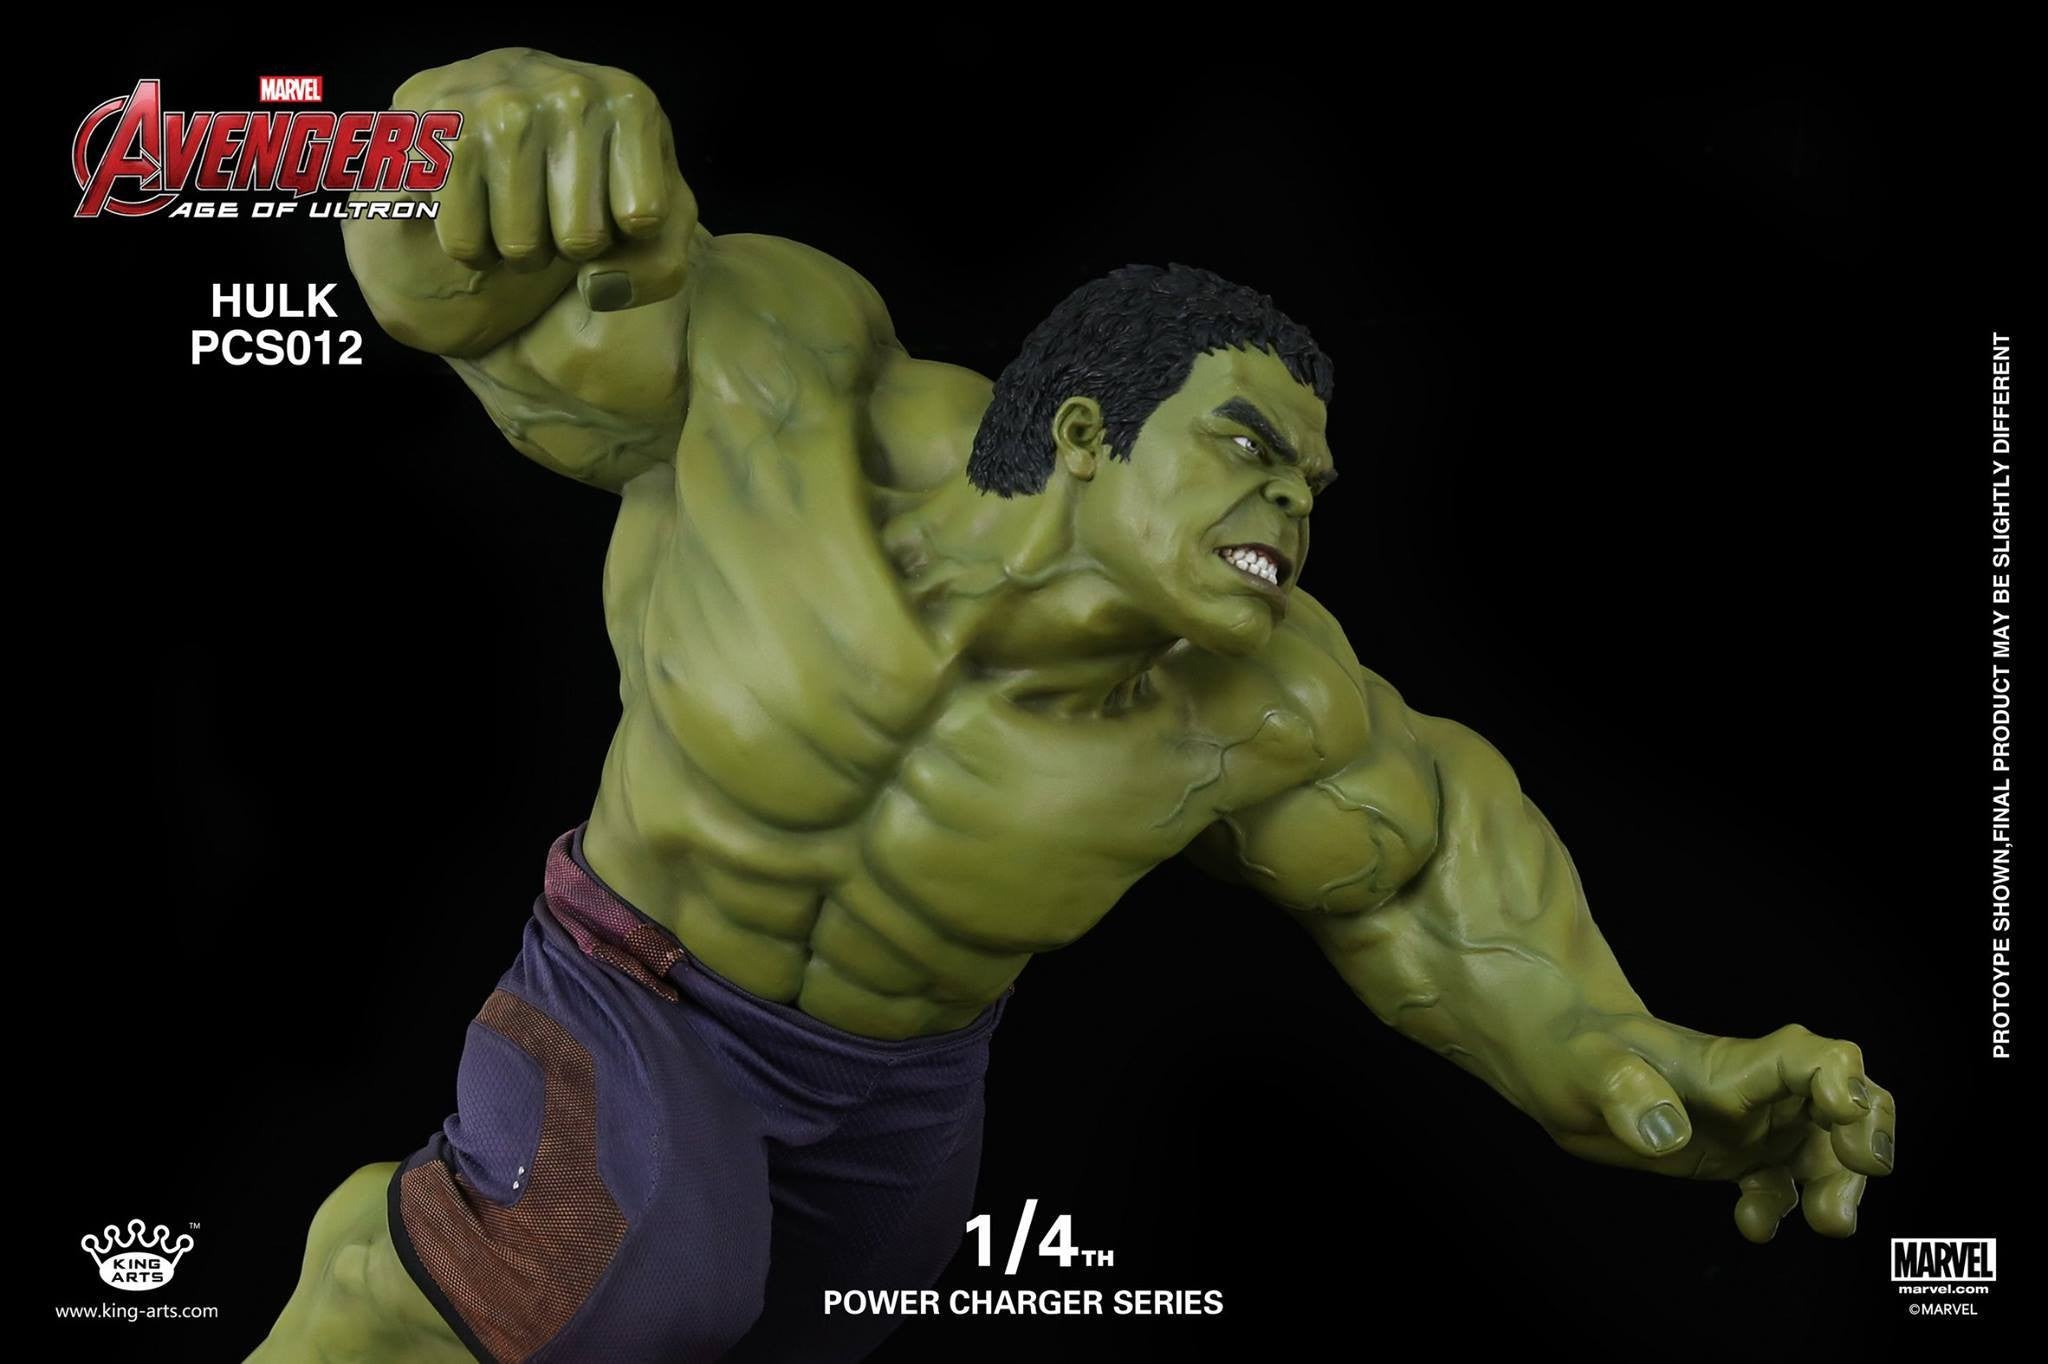 King Arts - Power Charger Series PCS012 - Avengers: Age of Ultron - 1/4th Scale Hulk Charger - Marvelous Toys - 3